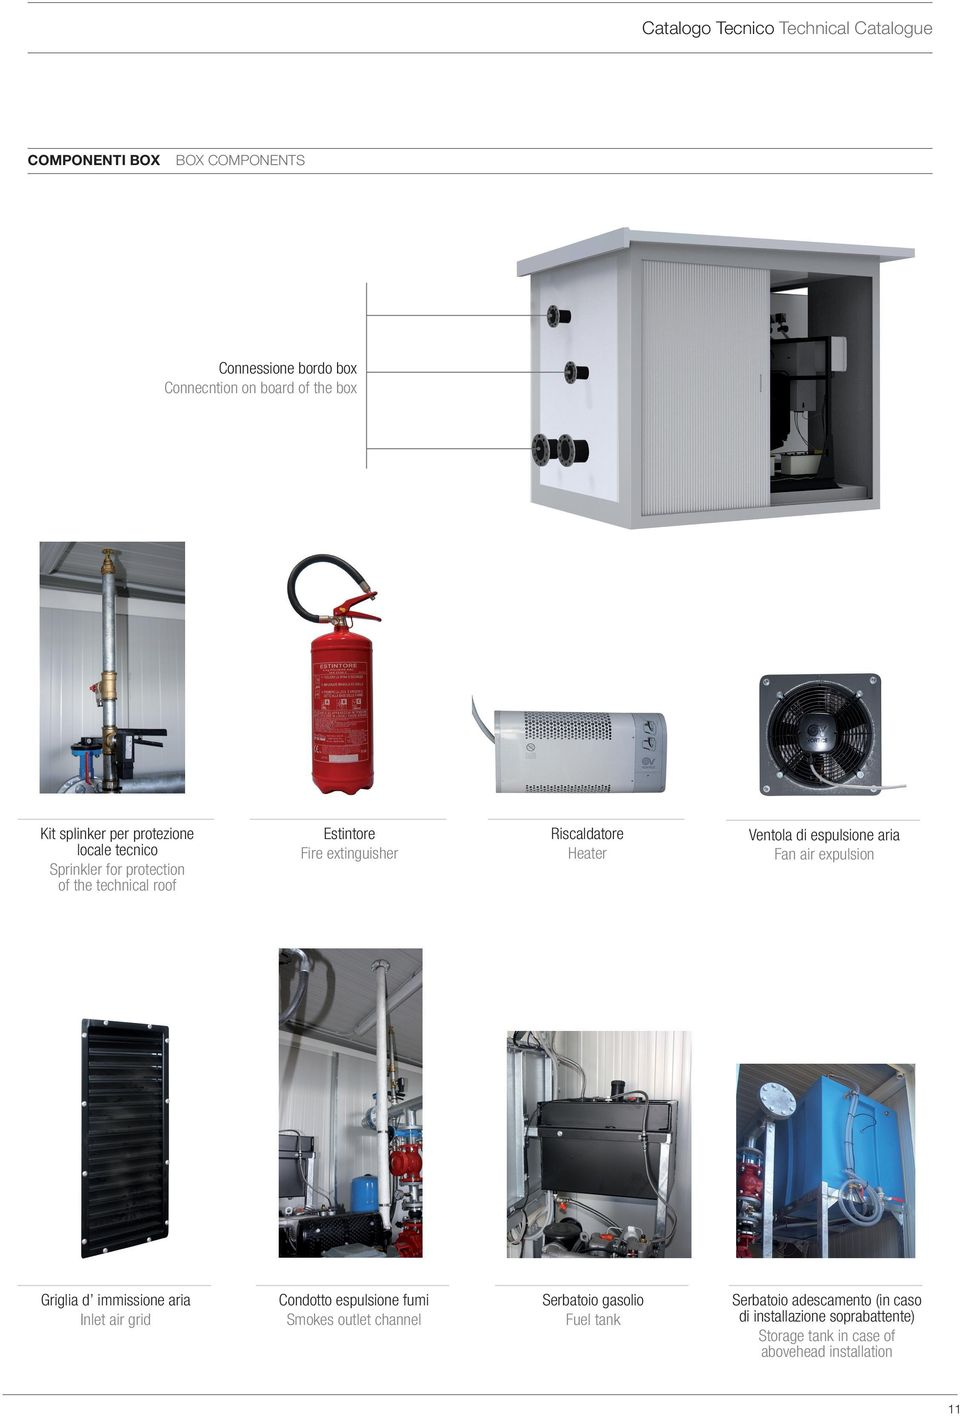 immissione aria Inlet air grid Condotto espulsione fumi Smokes outlet channel Riscaldatore Heater Serbatoio gasolio Fuel tank